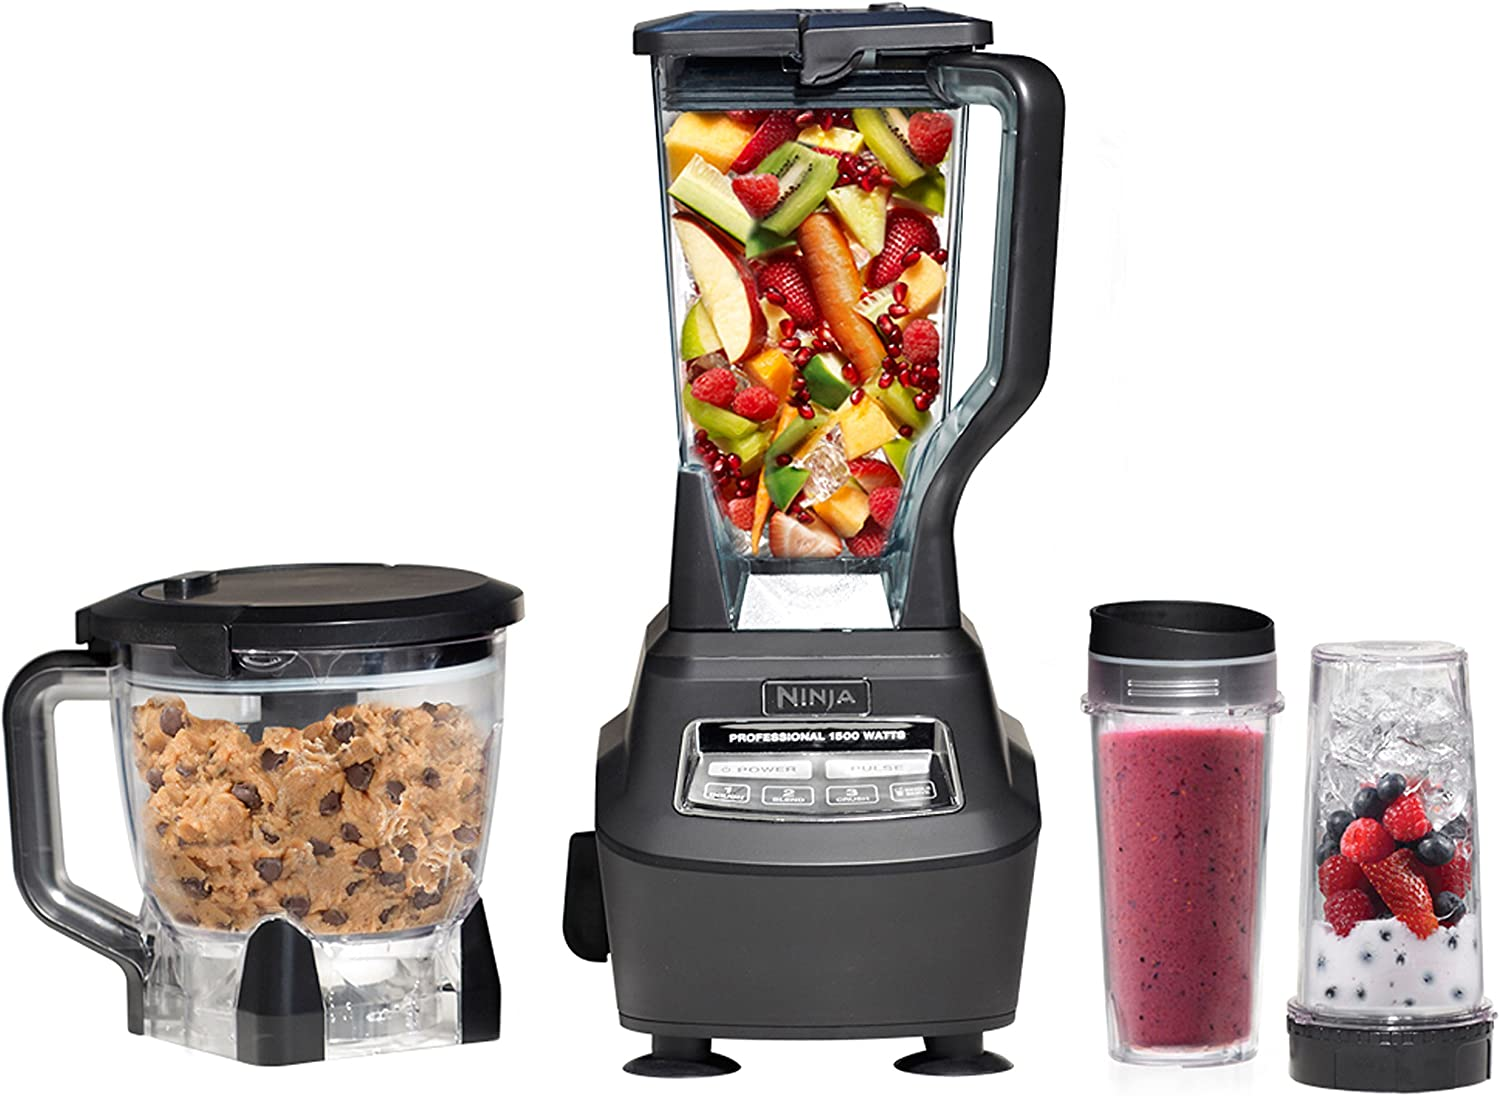 Ninja MEGA comes with a main pitcher, a single-serve bowl and a food processor